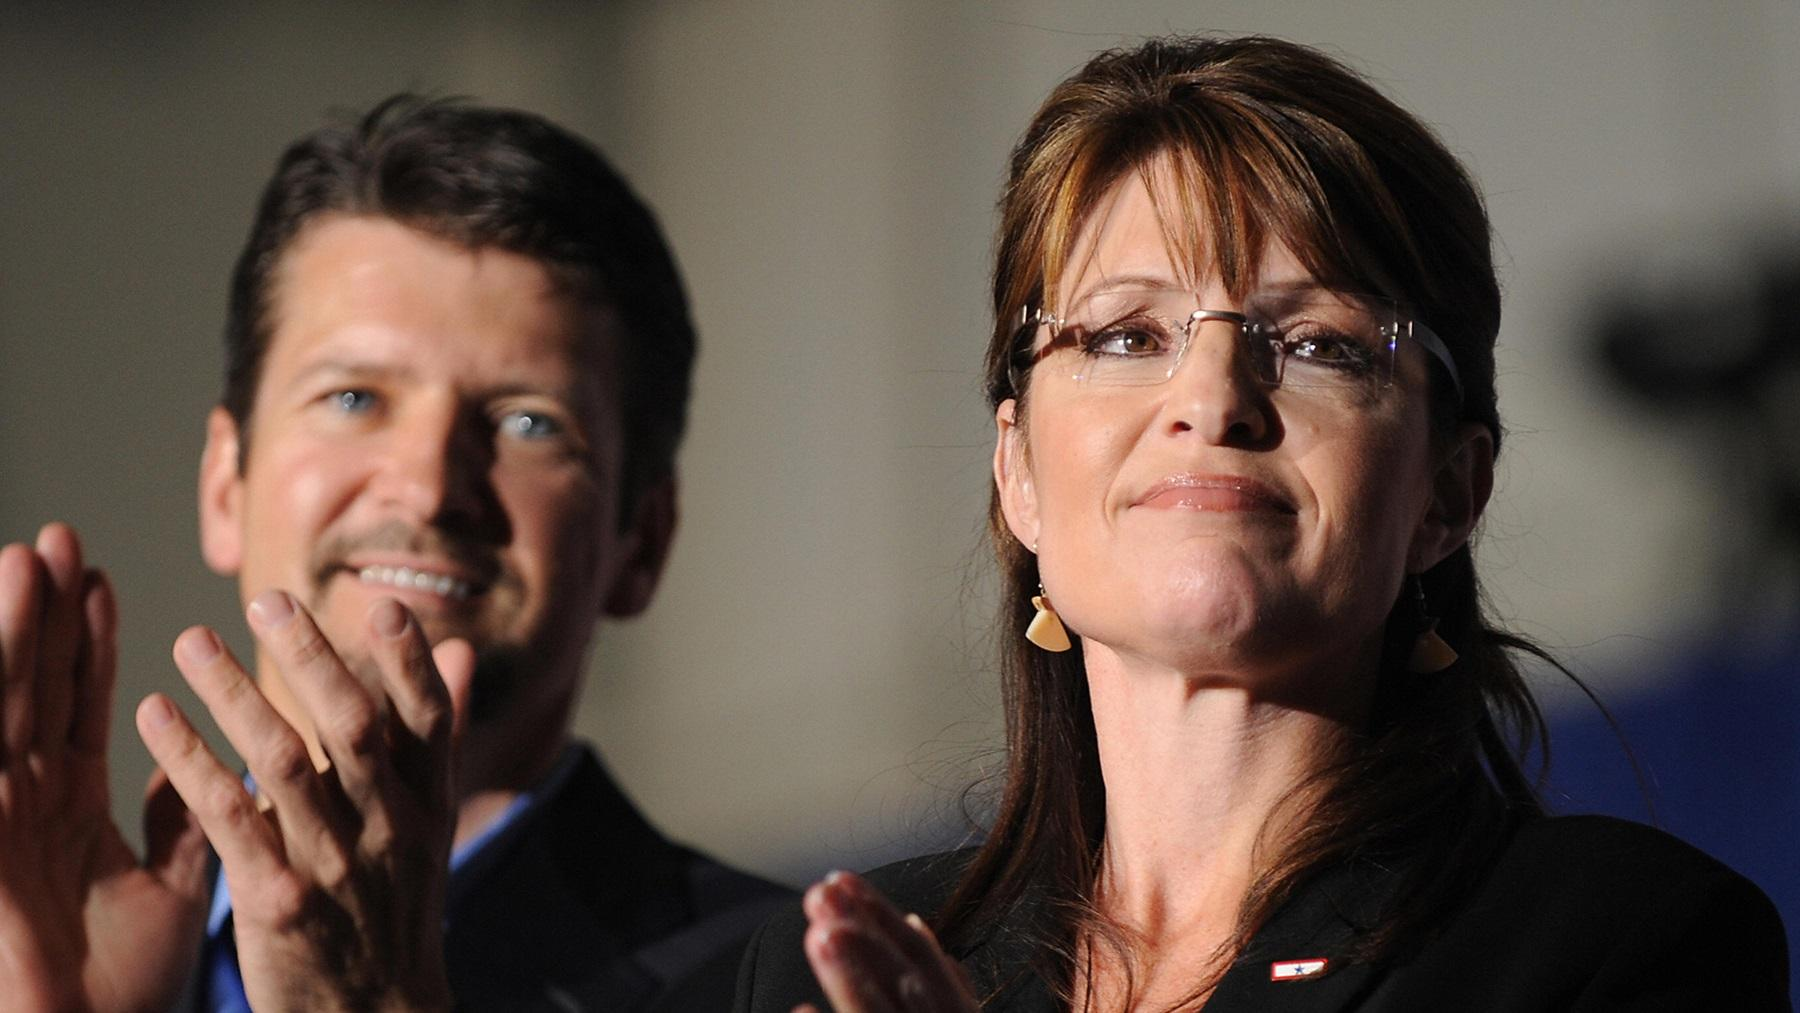 Sarah And Todd Palin's Divorce Announcement Gets An Odd Comment From Their Ex Son-In-Law, Dakota Meyer